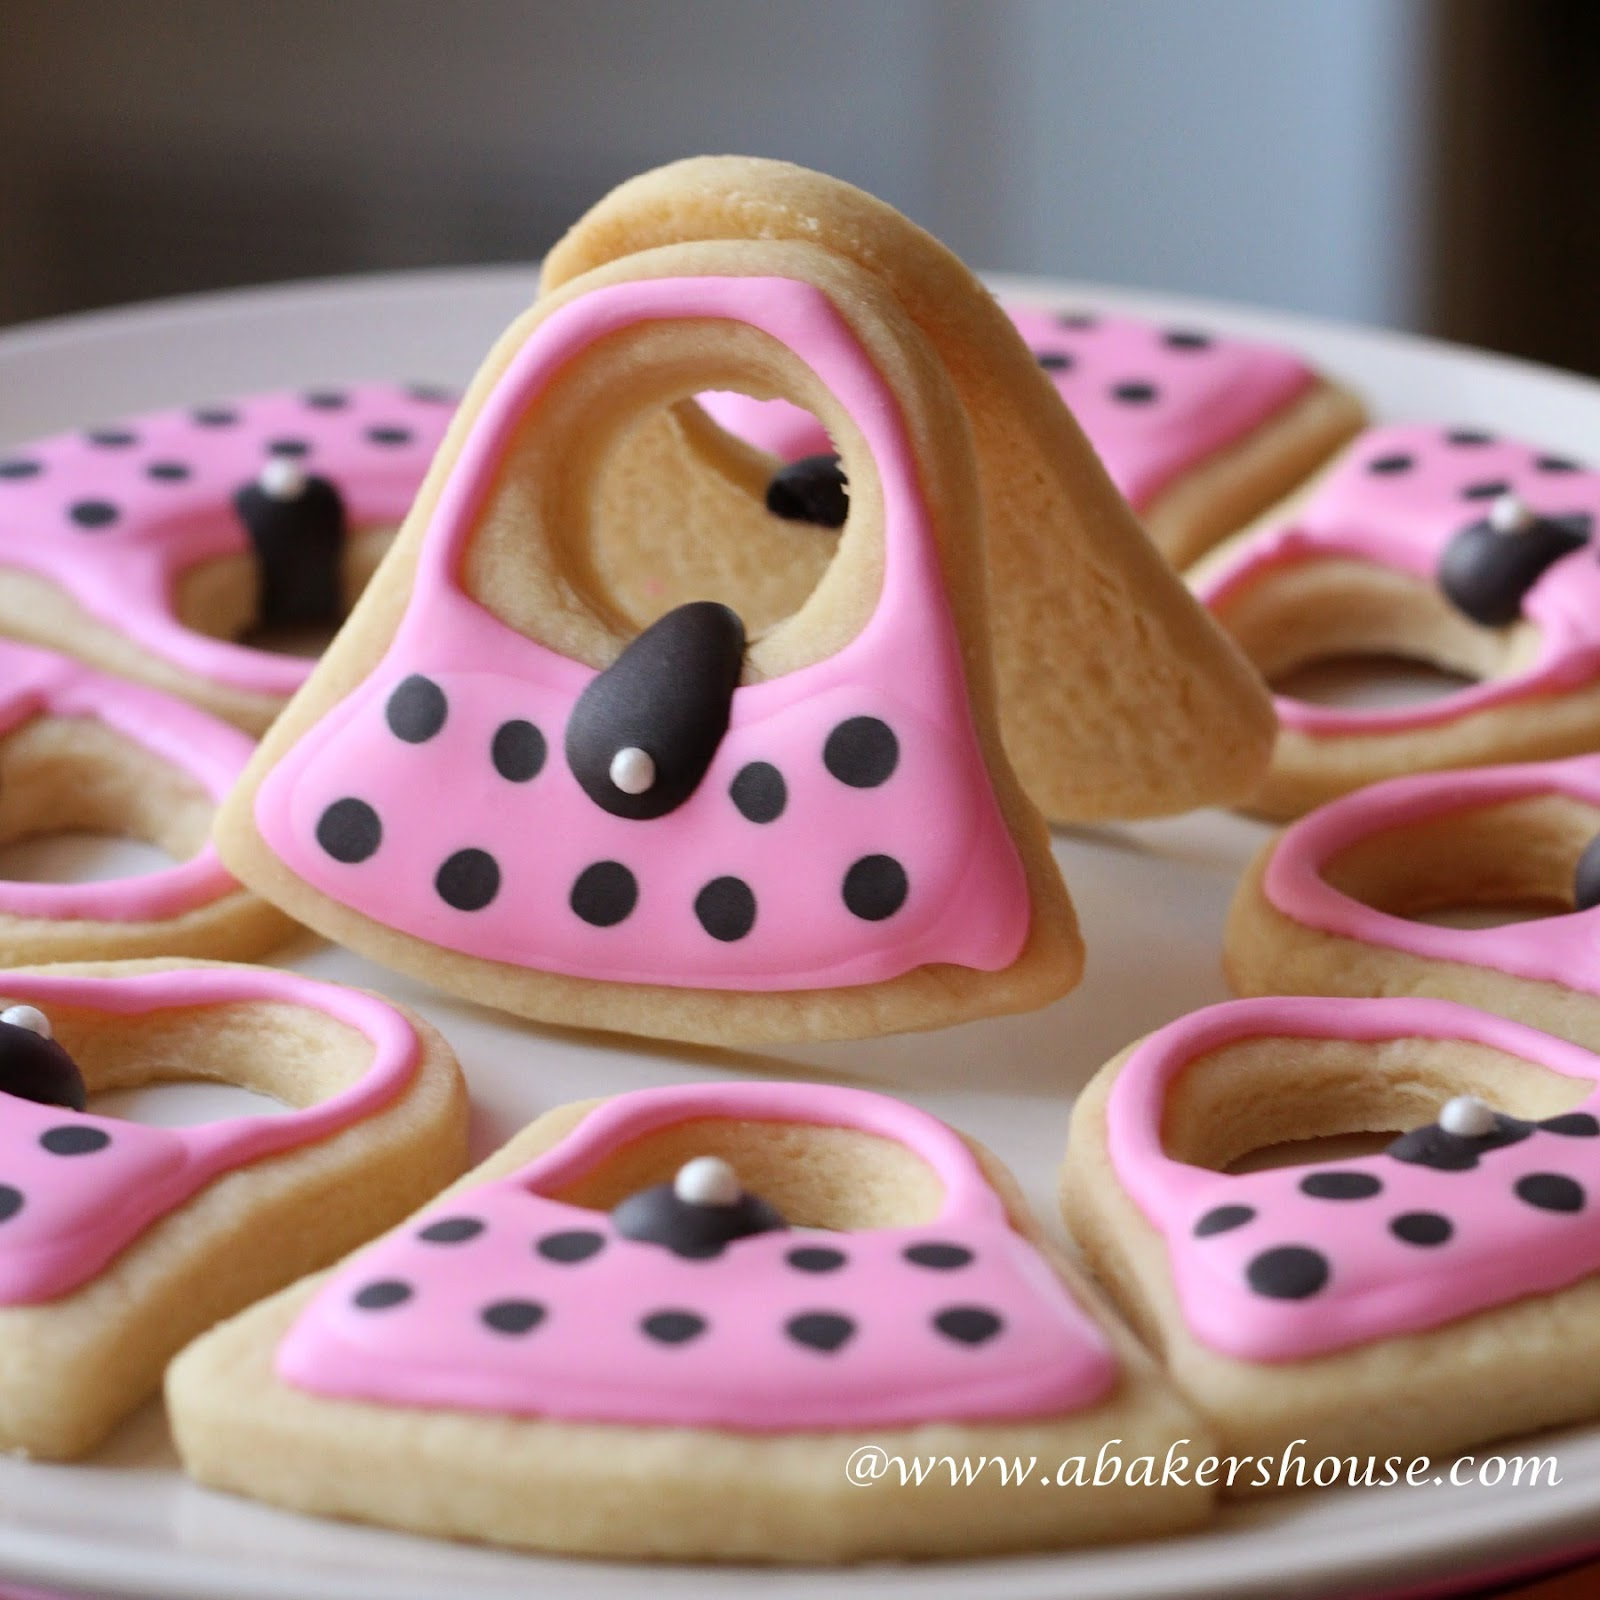 plate of decorated sugar cookies topped with pink and black royal icing in the shape of purses